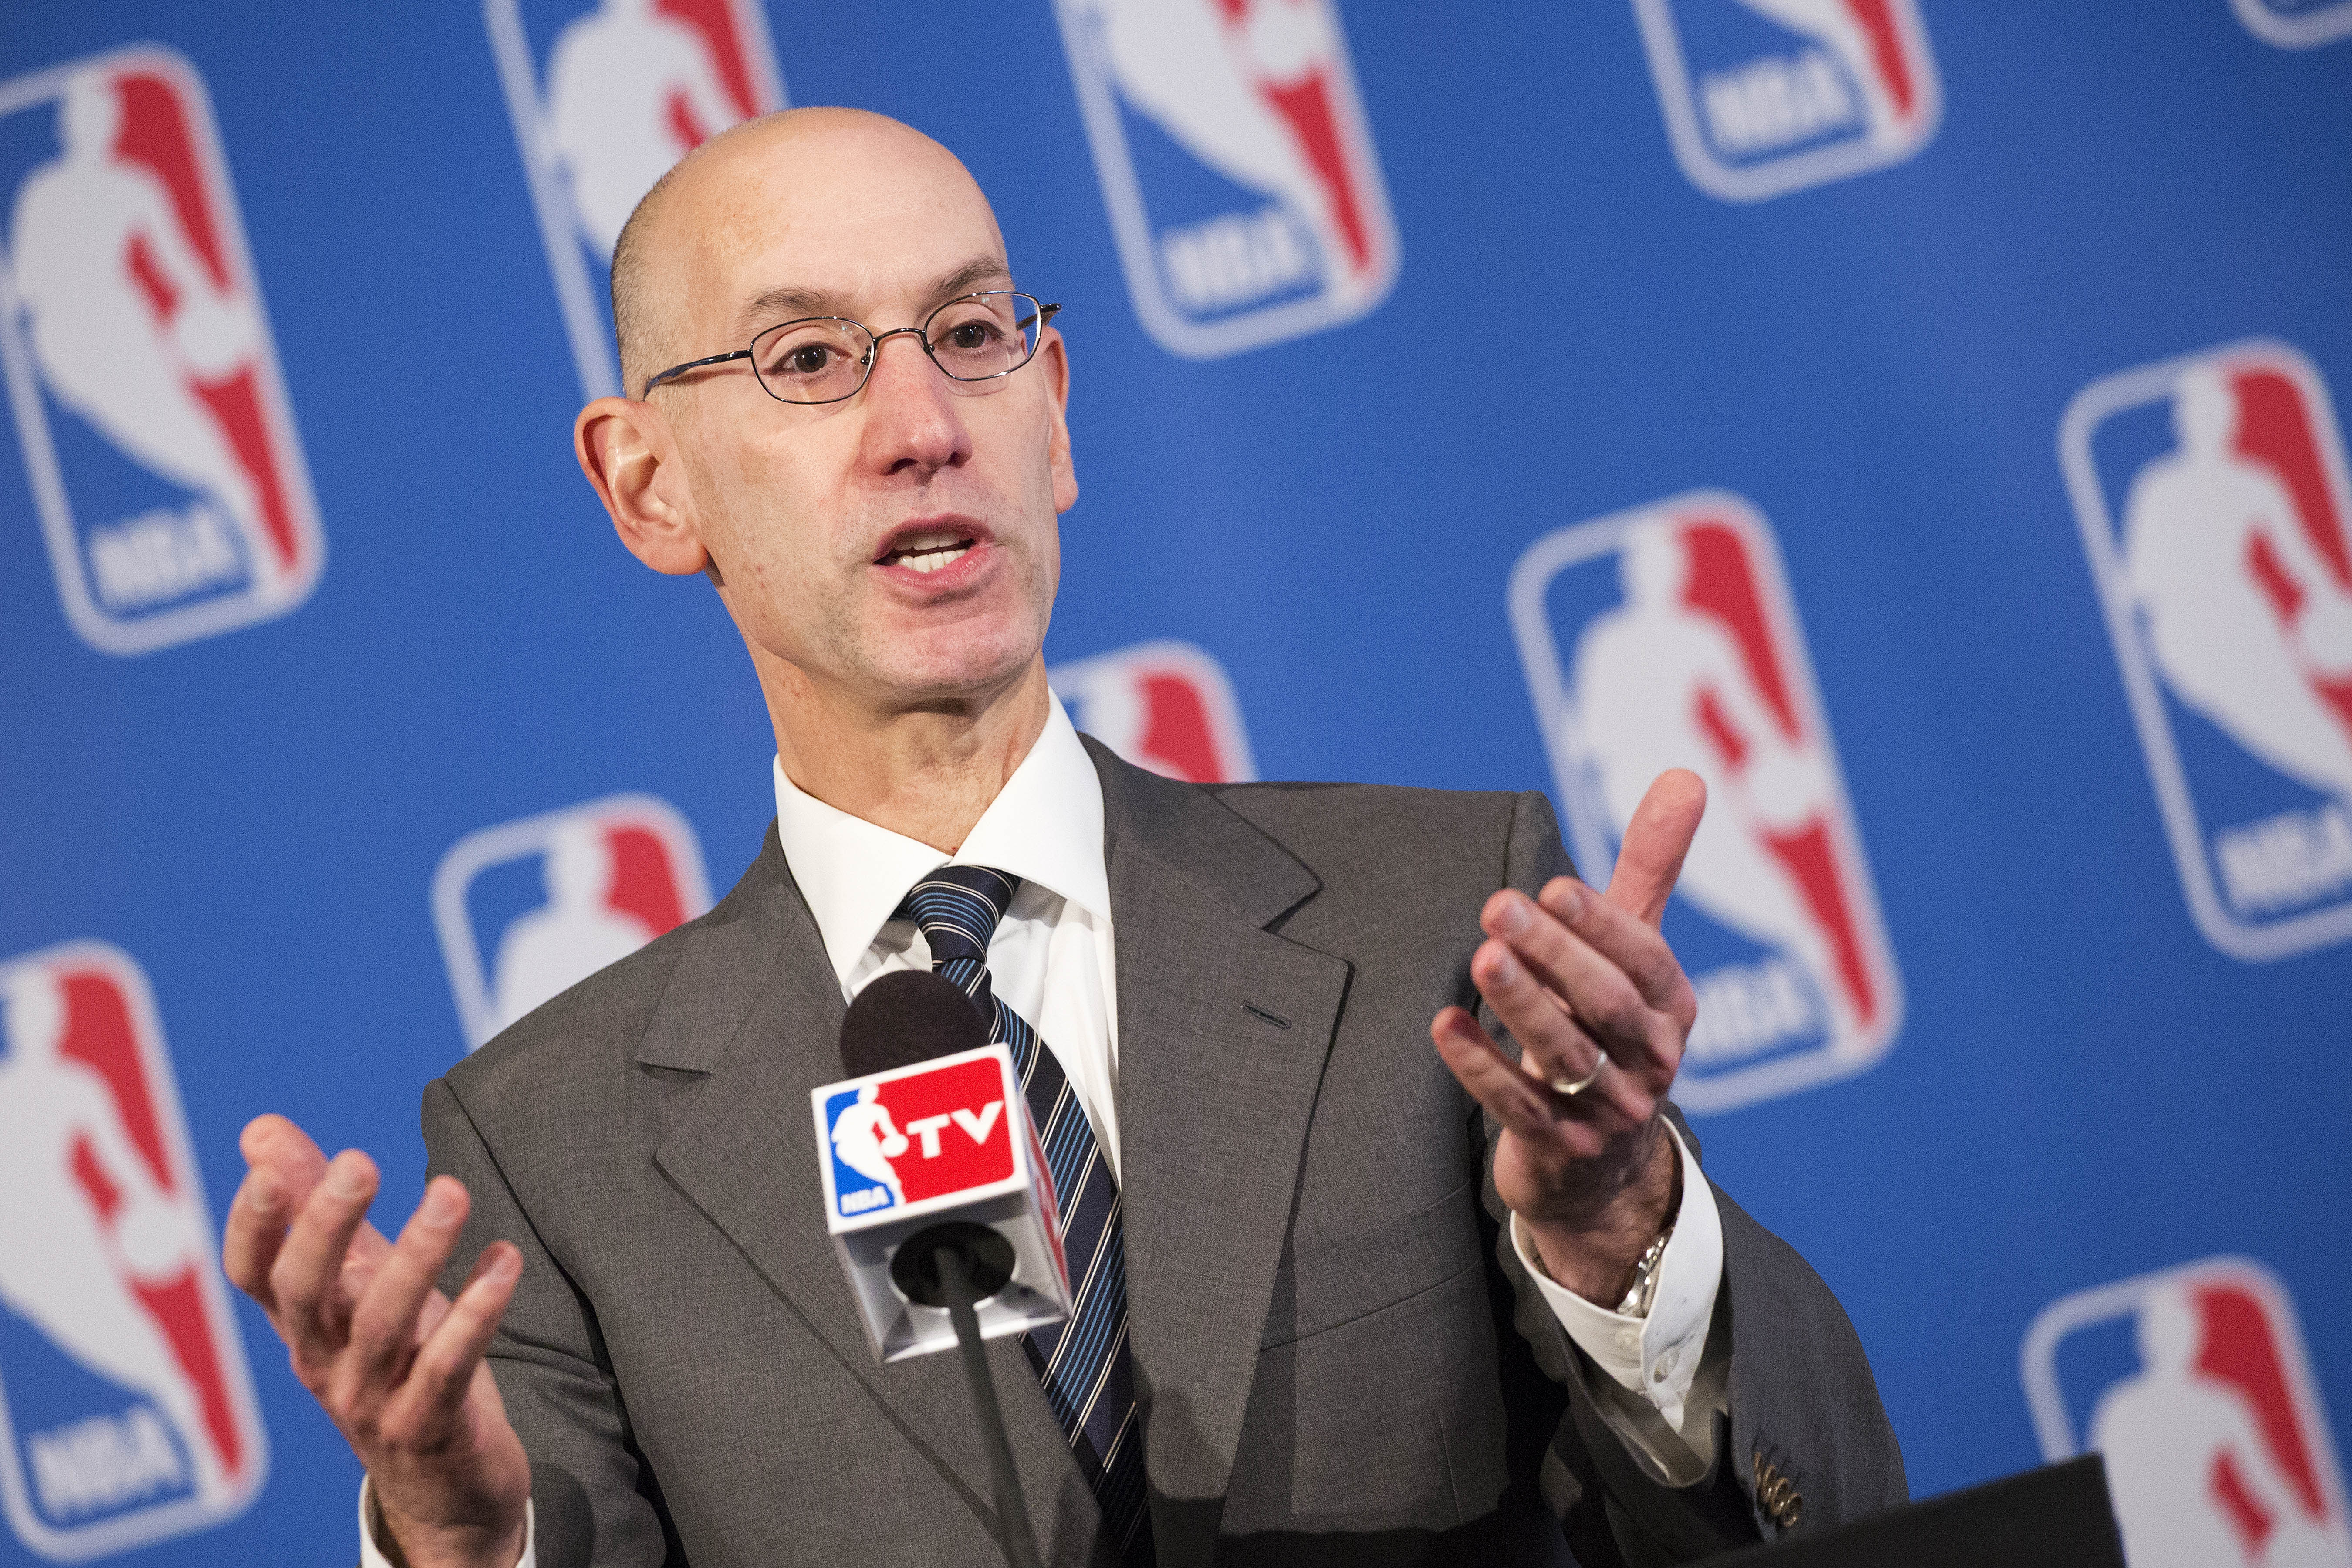 NBA Commissioner Adam Silver speaks at a news conference after an annual NBA basketball owners meeting, Friday, Oct. 23, 2015 in New York. (AP Photo/Mark Lennihan)